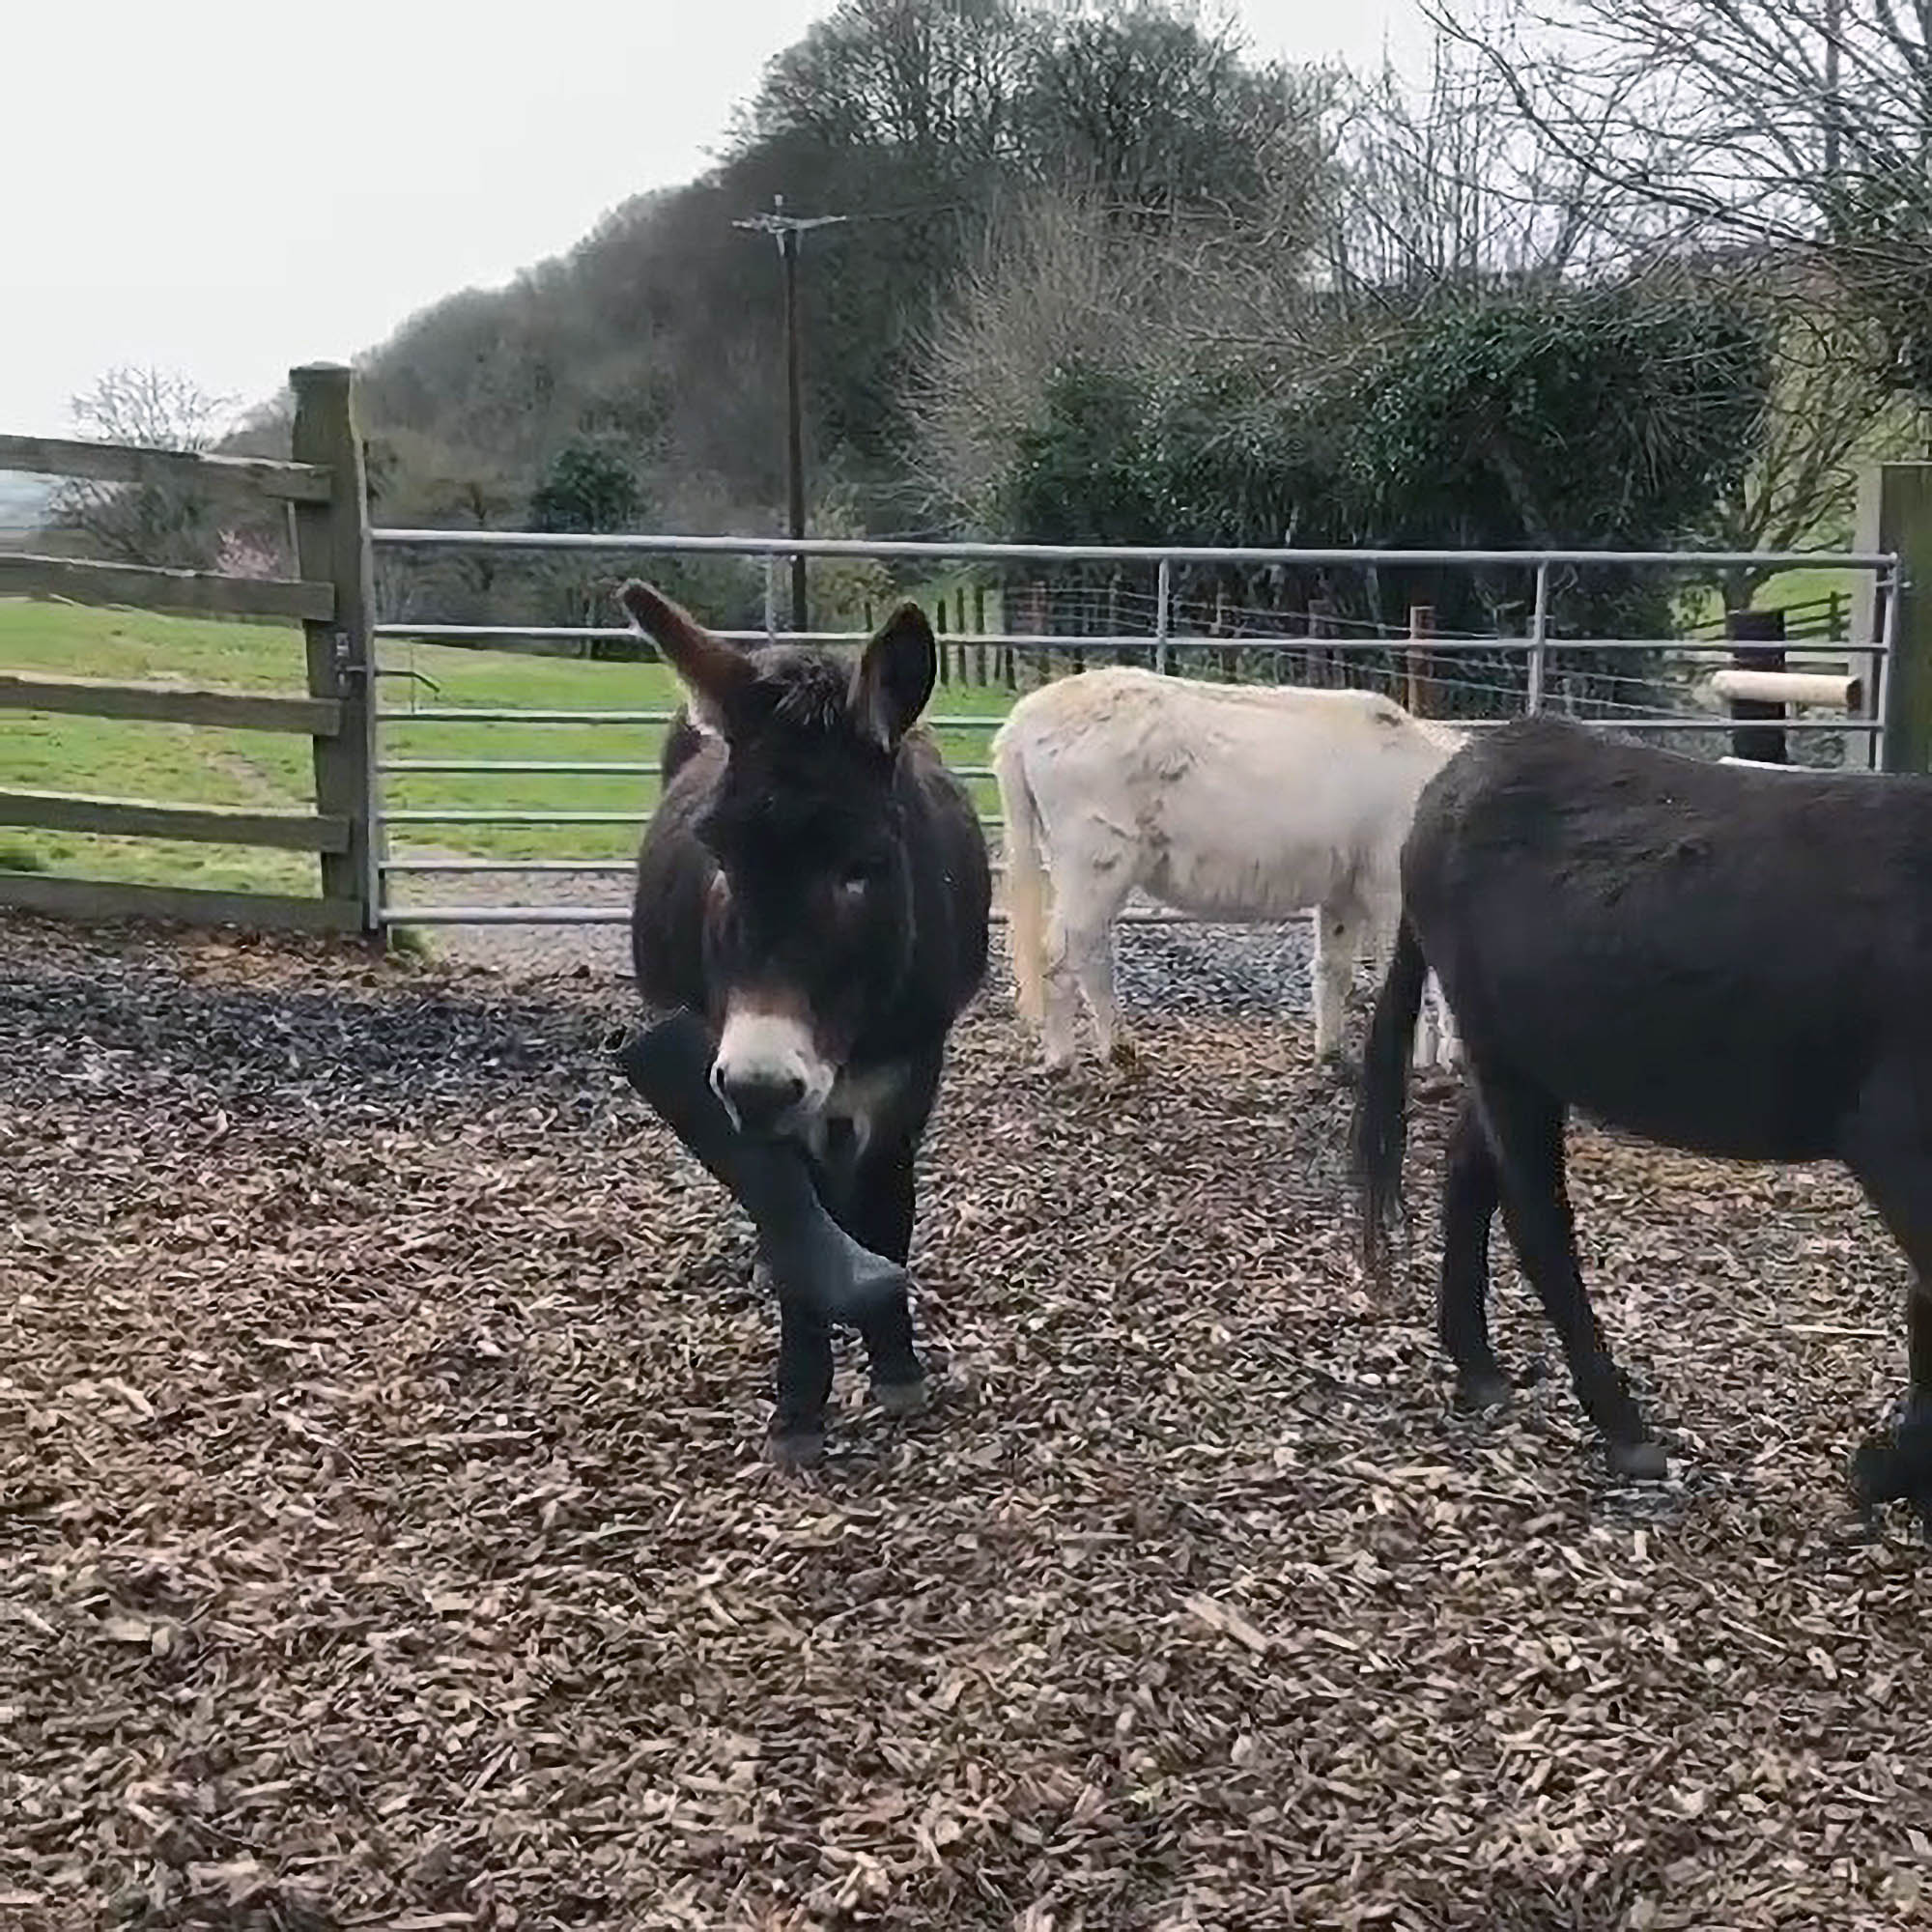 VIDEO: Uh-Oh Someone's In For An Ass Kicking: Adorable Donkeys Romp With Galoshes